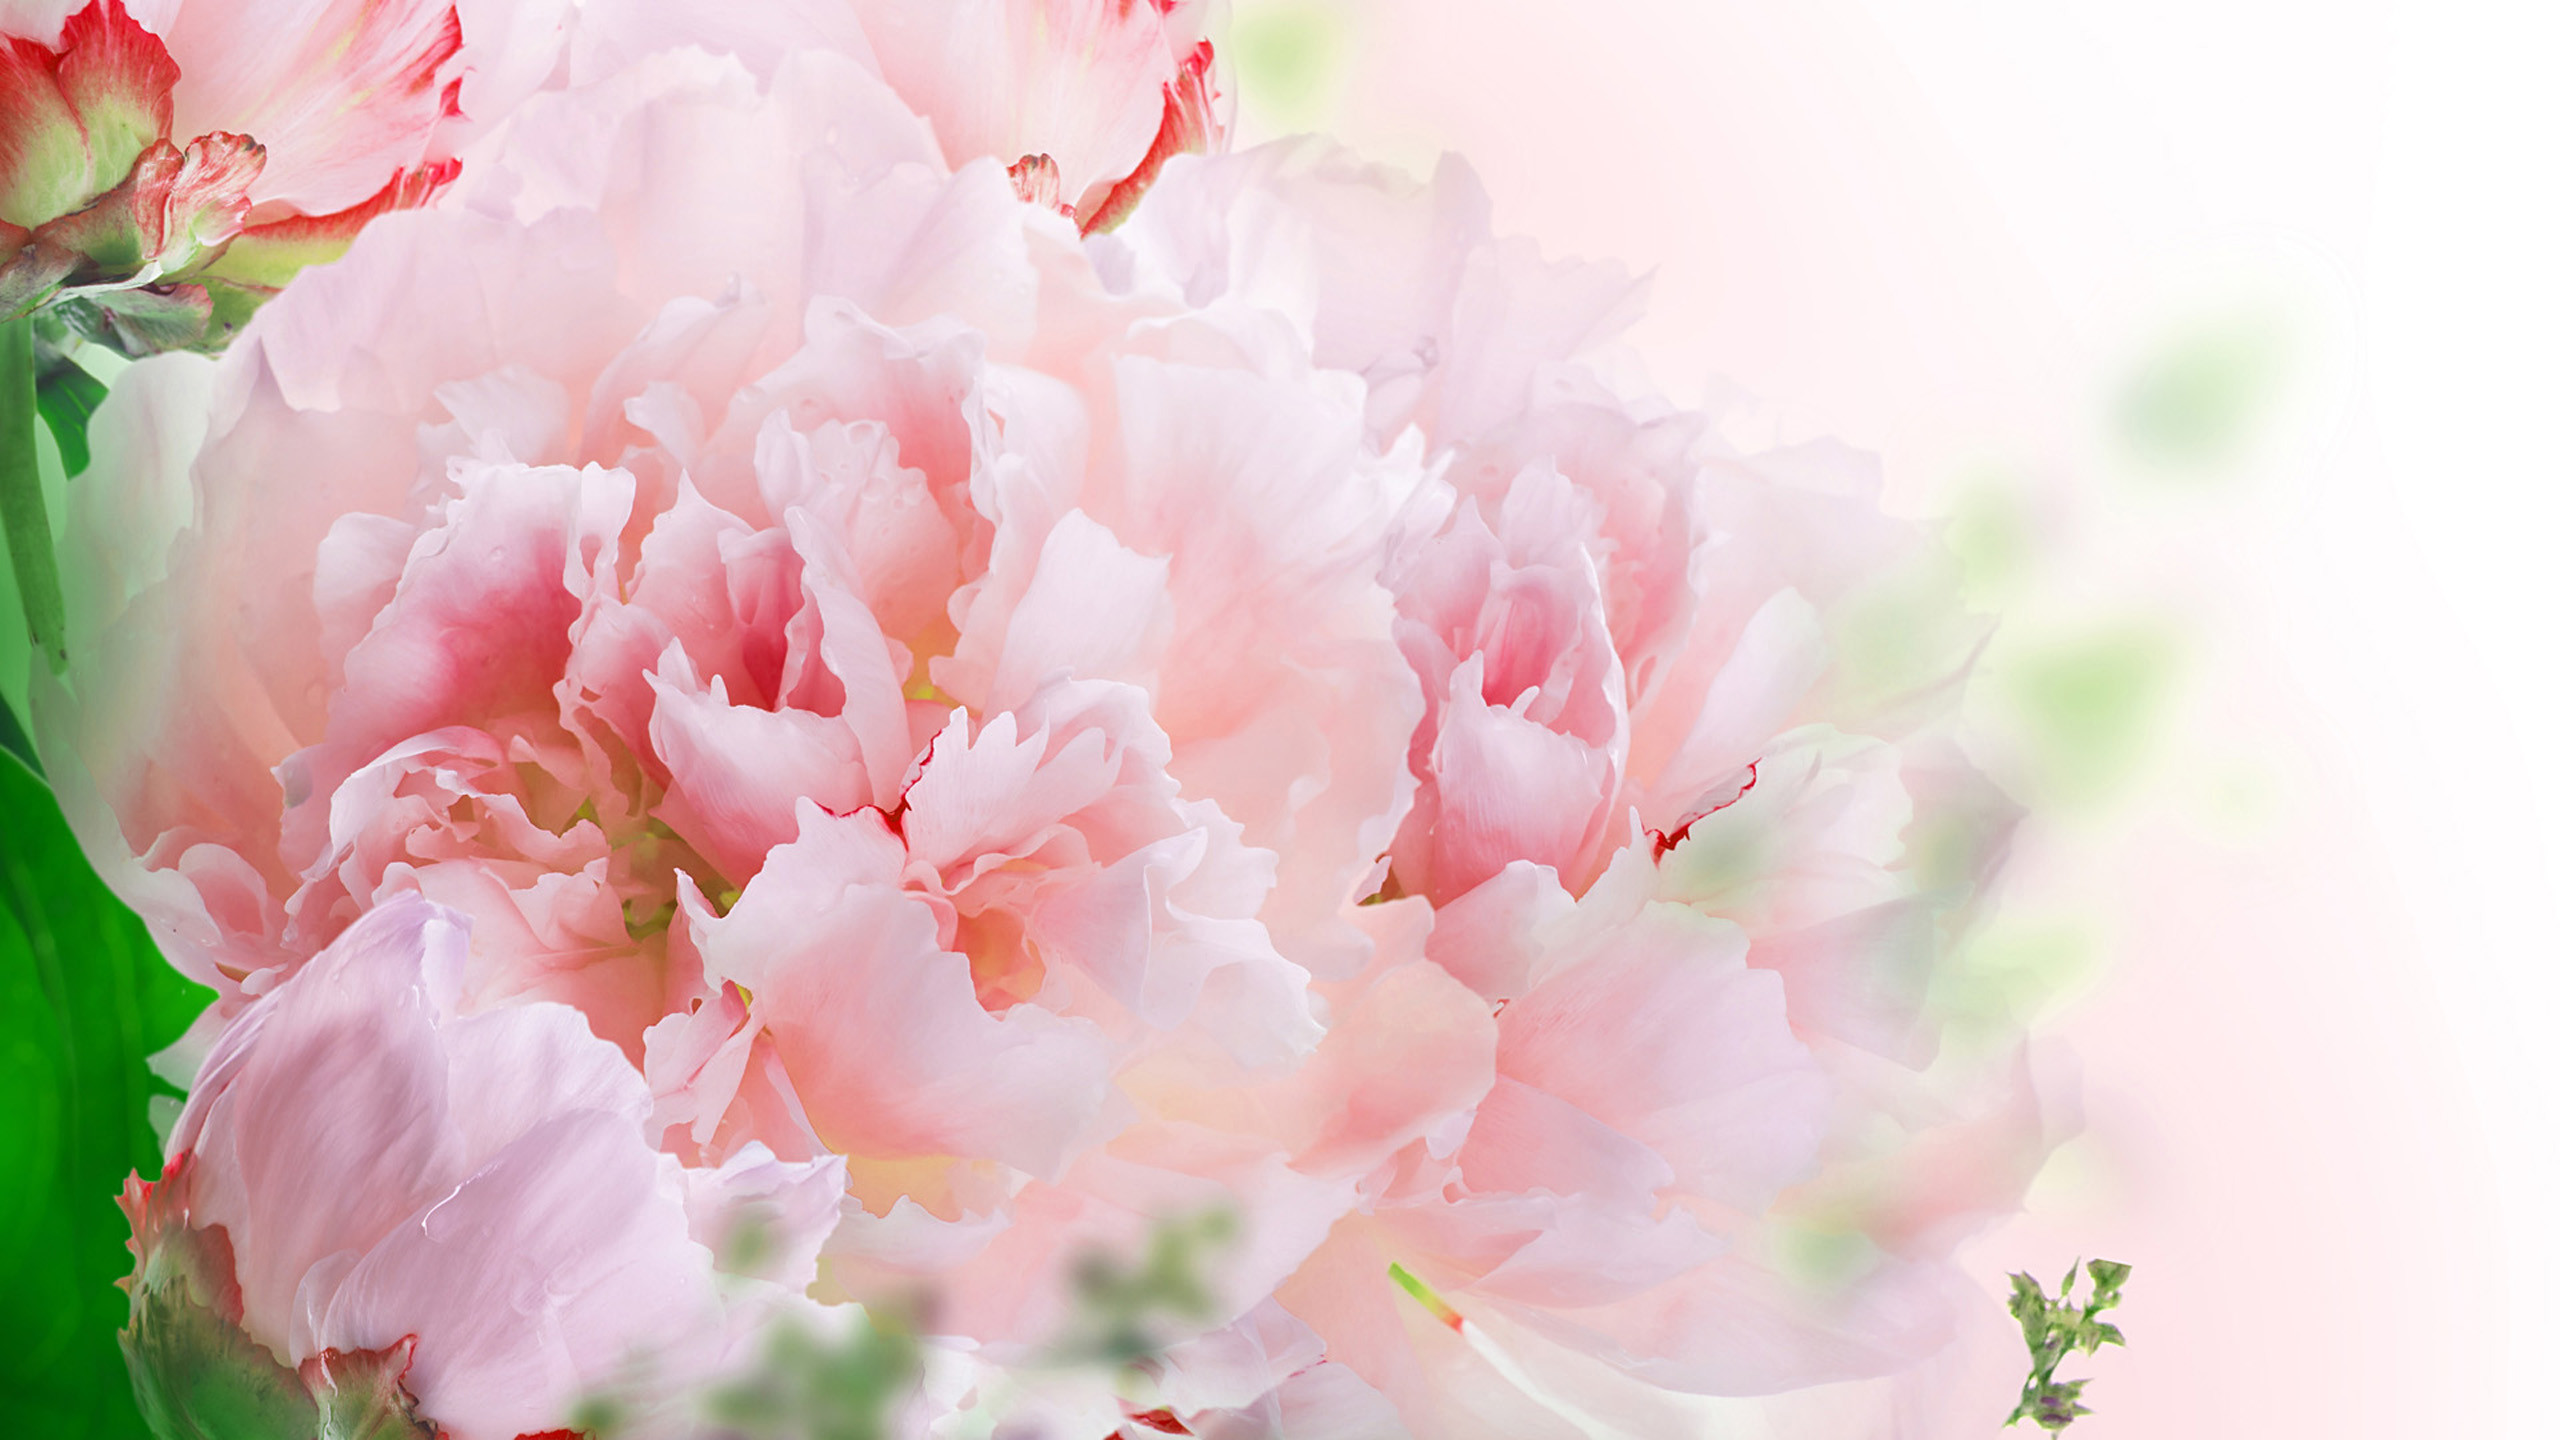 Carnation Wallpapers Wallpapers All Superior Carnation Wallpapers Backgrounds Wallpapersplanet Net